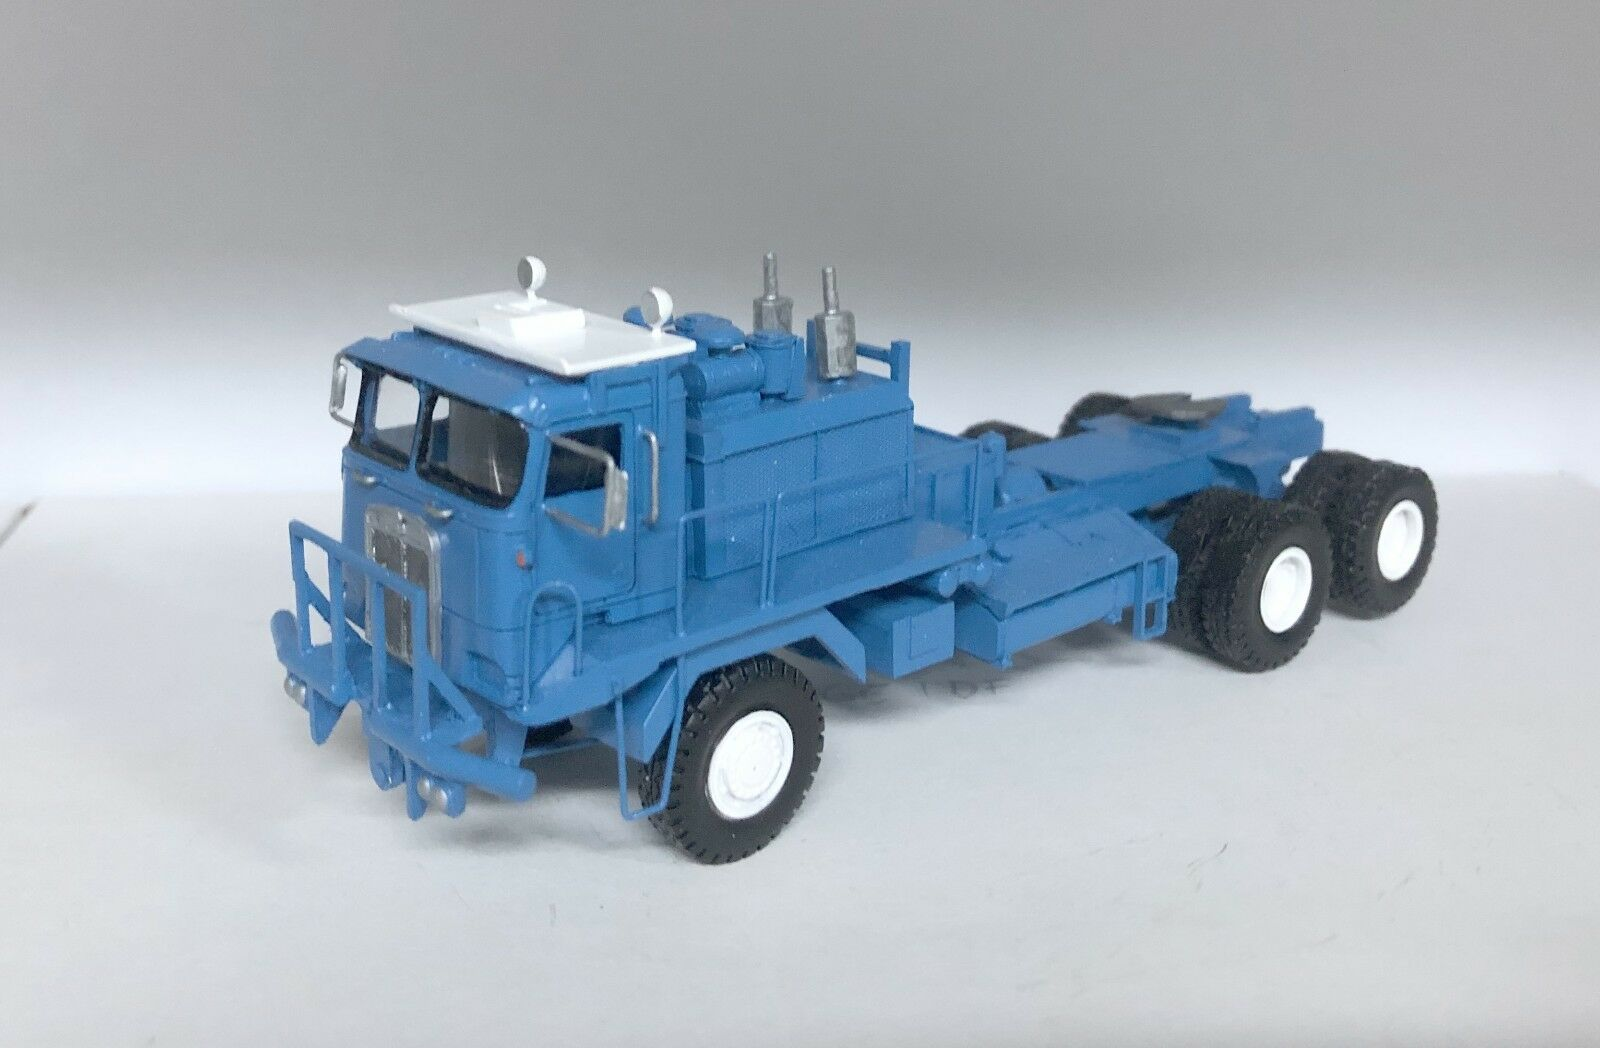 HO 1 87 Kenworth 993 COE Oilfield - bluee - Ready Made Resin Model